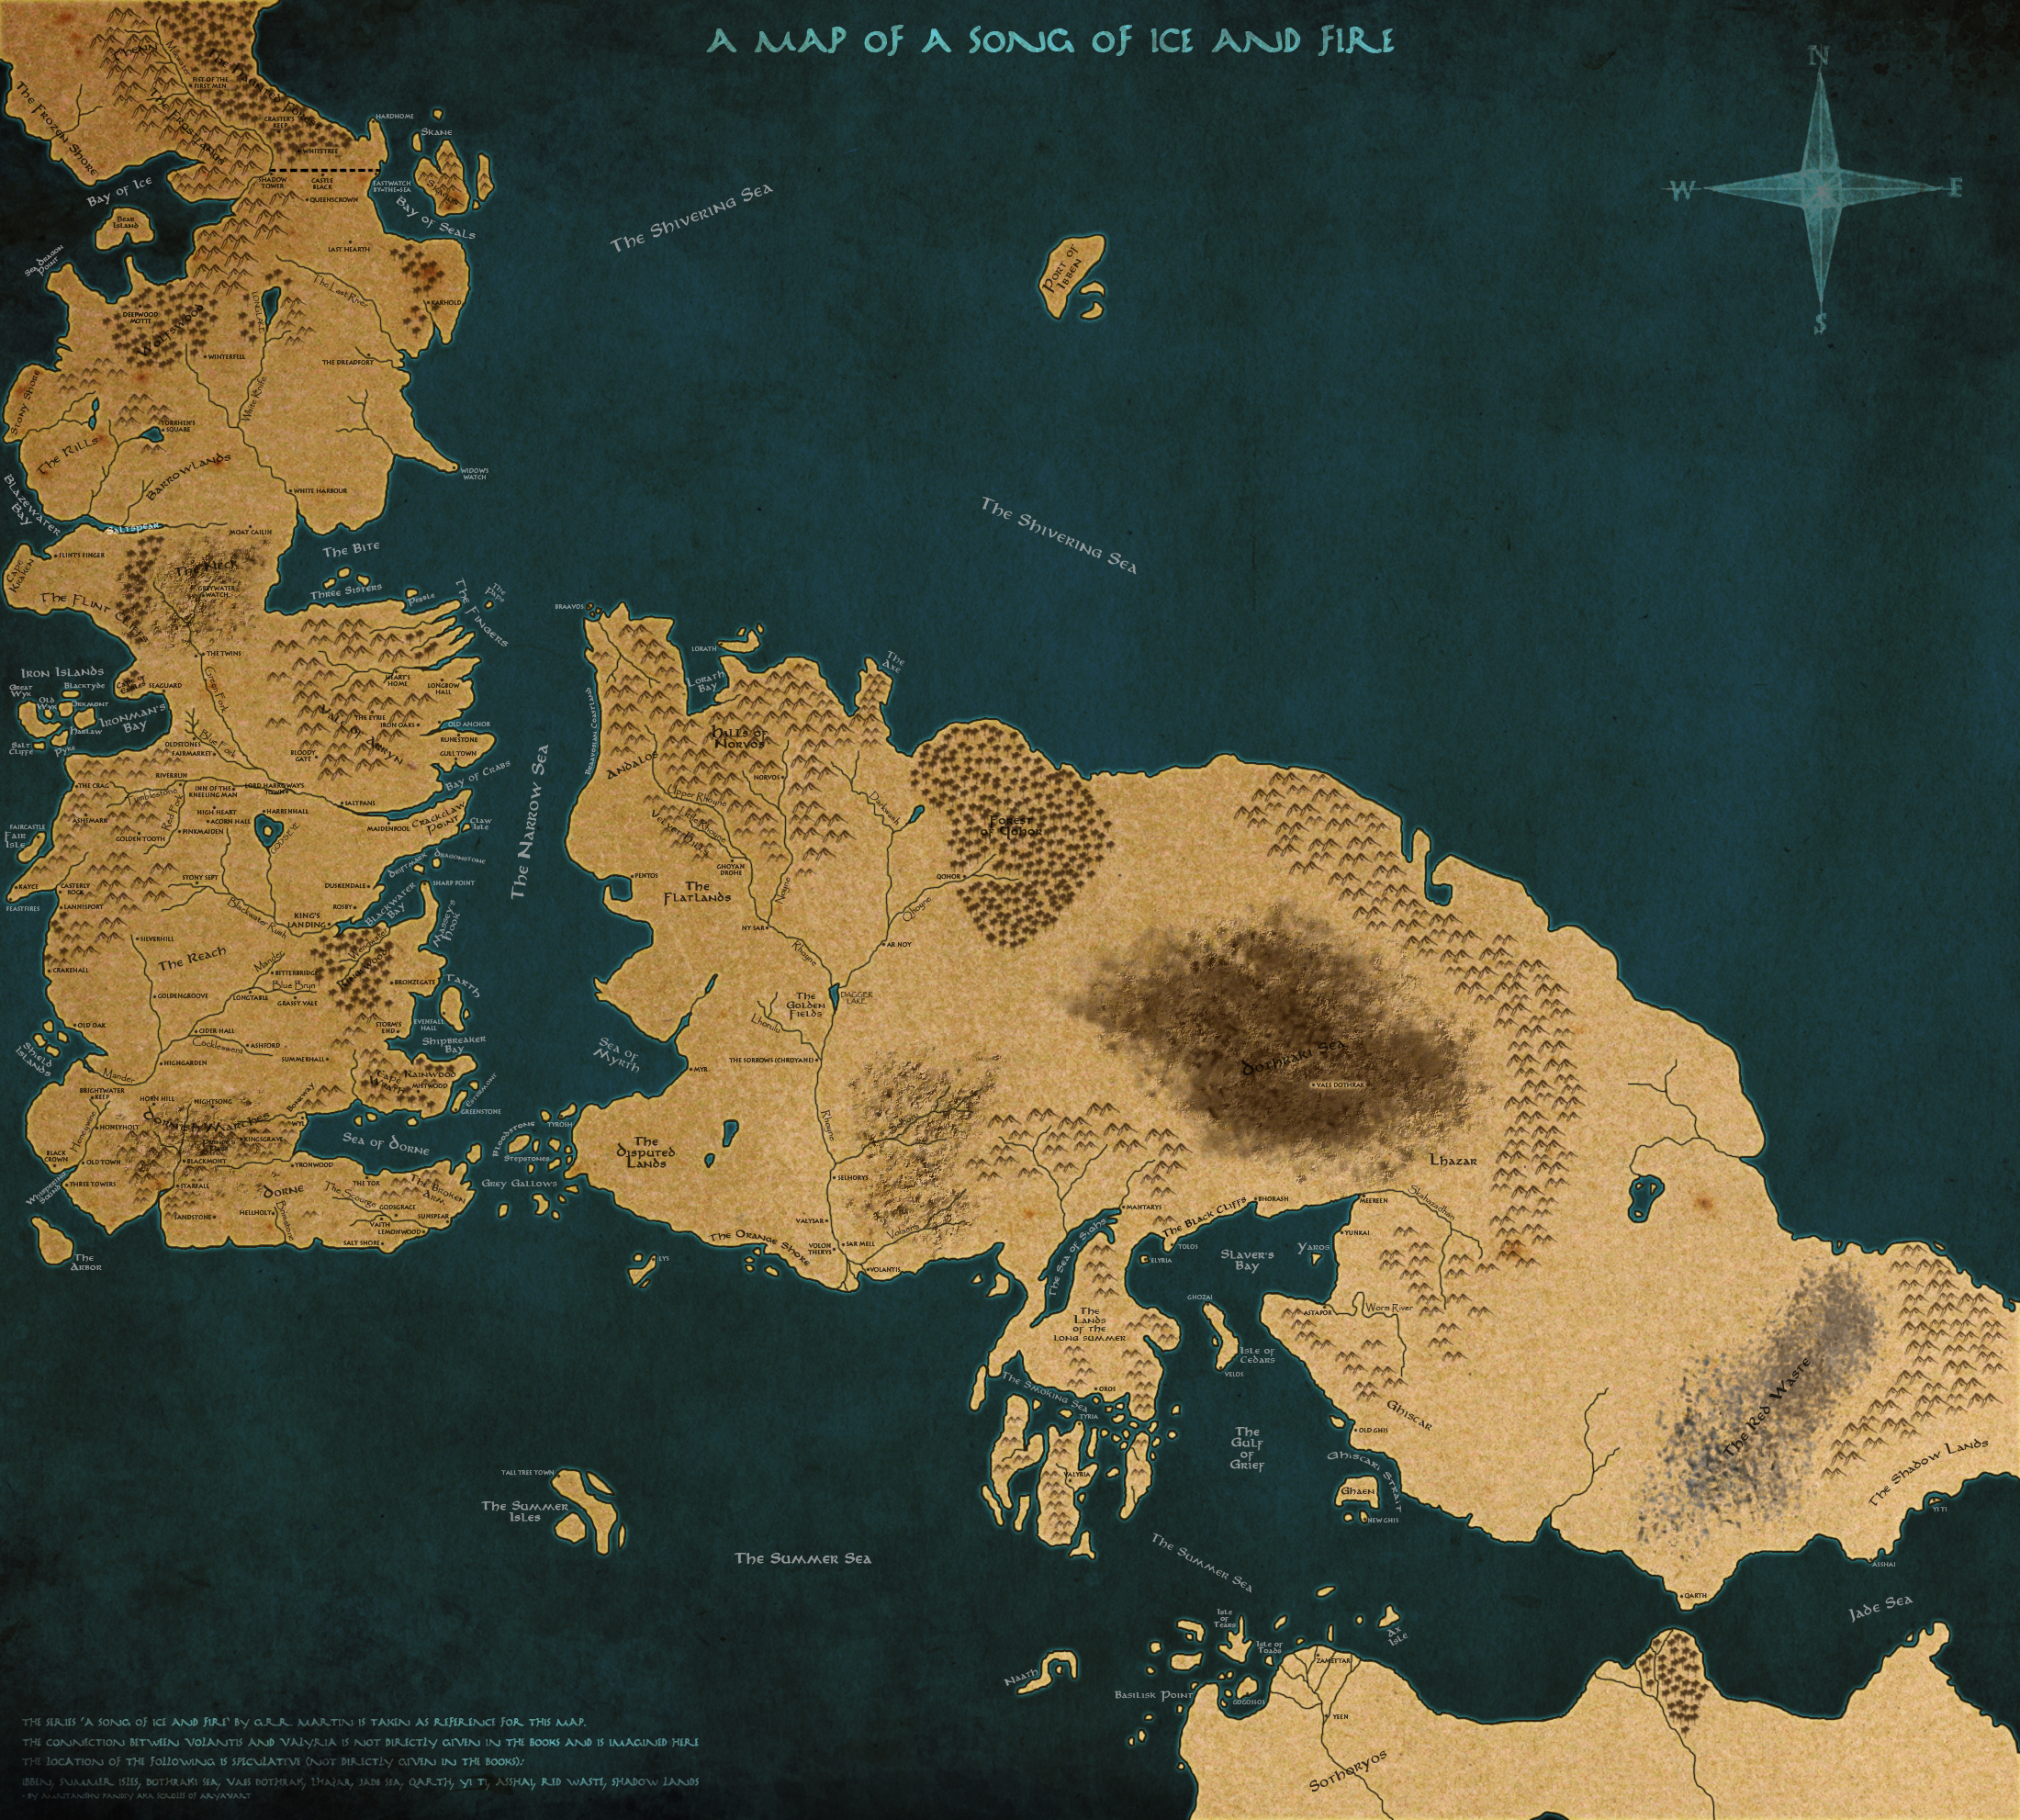 A map of a song of ice and fire version 2 by scrollsofaryavart on scrollsofaryavart a map of a song of ice and fire version 2 by scrollsofaryavart gumiabroncs Image collections